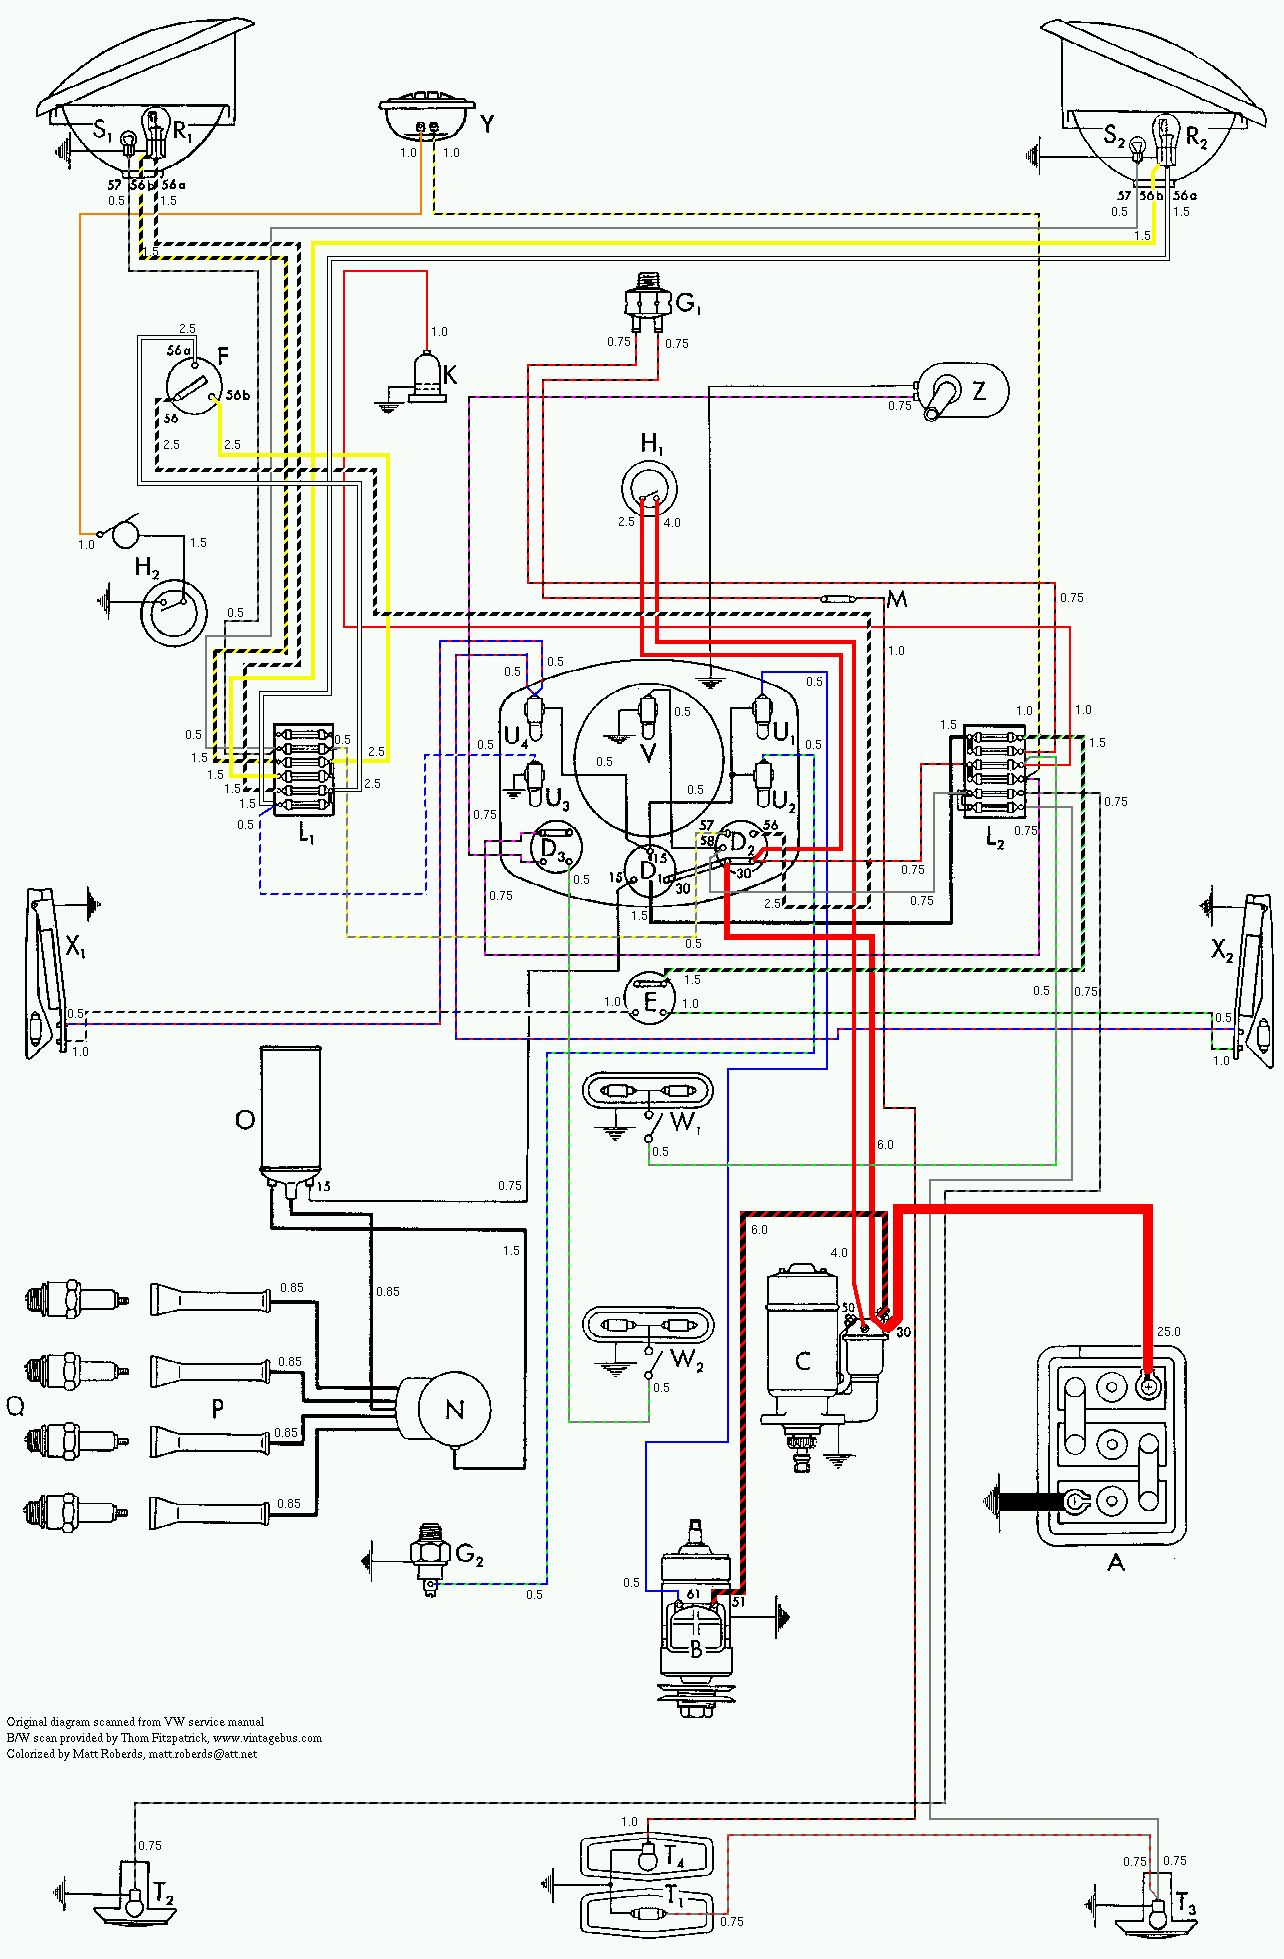 VW Wiring Diagrams on toyota fuse diagram, isuzu pickup fuse diagram, volkswagen fuse diagram, lexus fuse diagram, ford bronco fuse diagram, volvo fuse diagram, ford mustang fuse diagram,